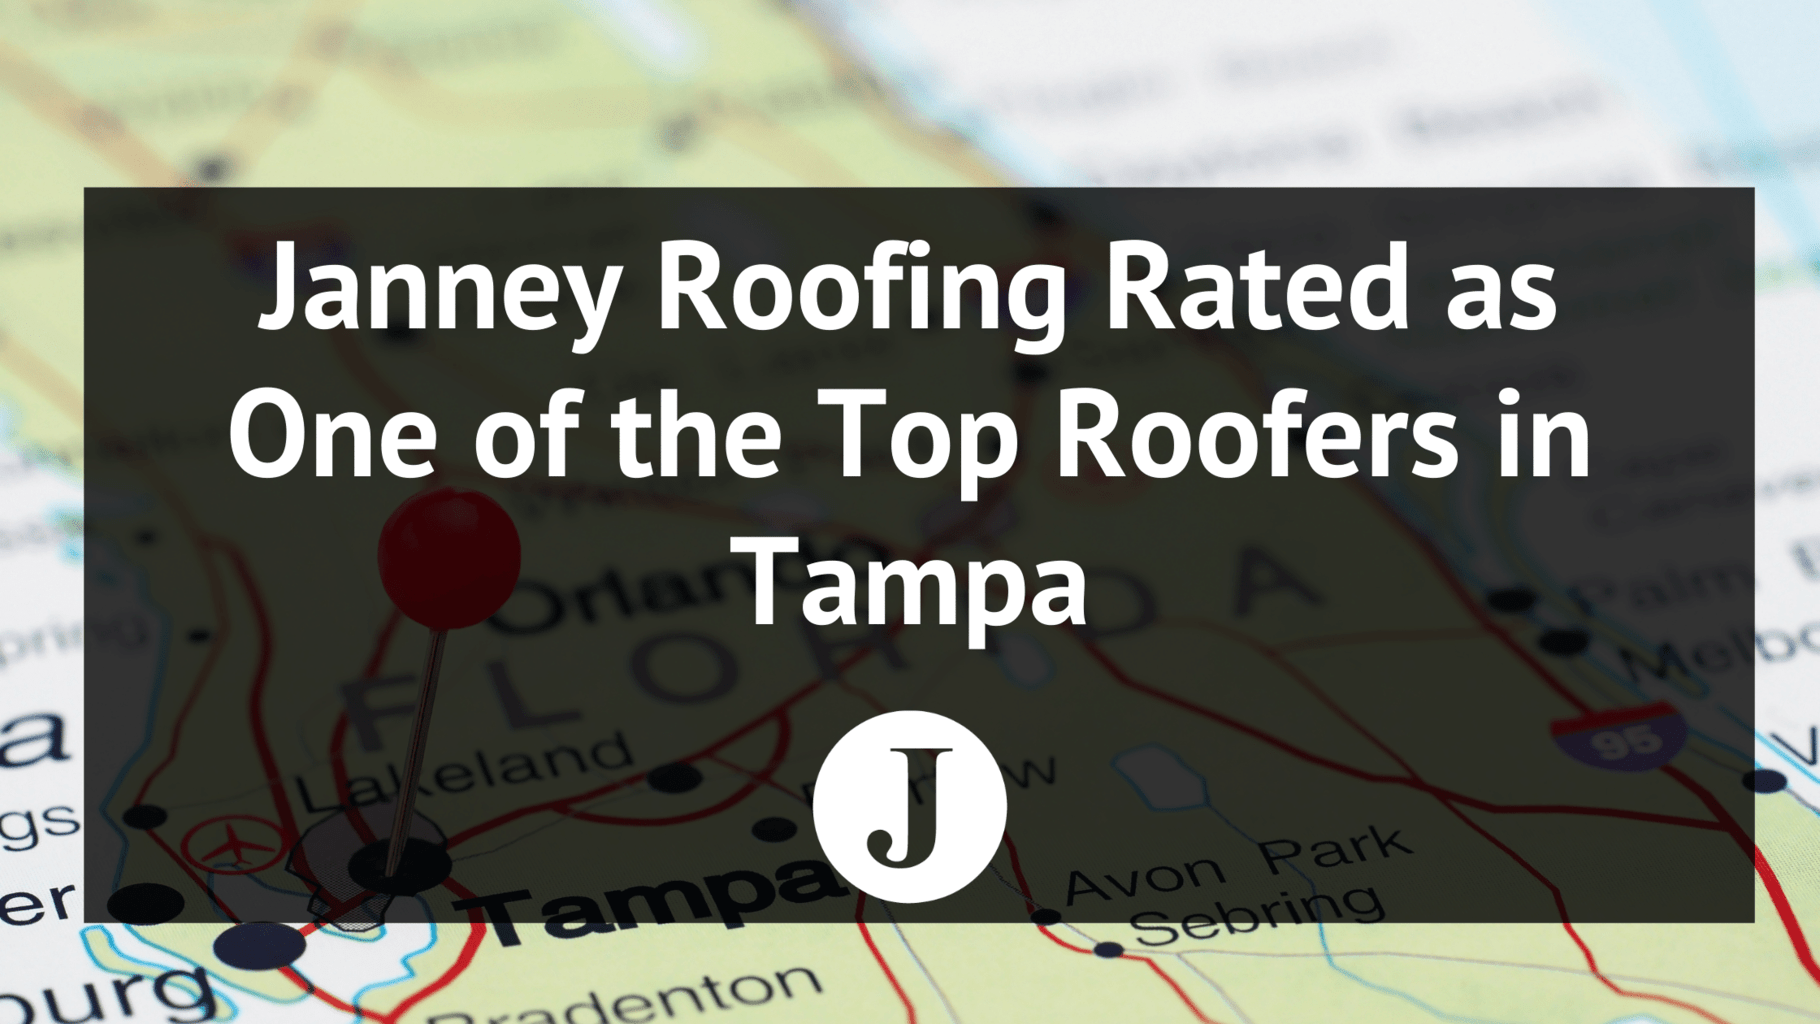 janney roofing rated as one of the top roofers in tampa